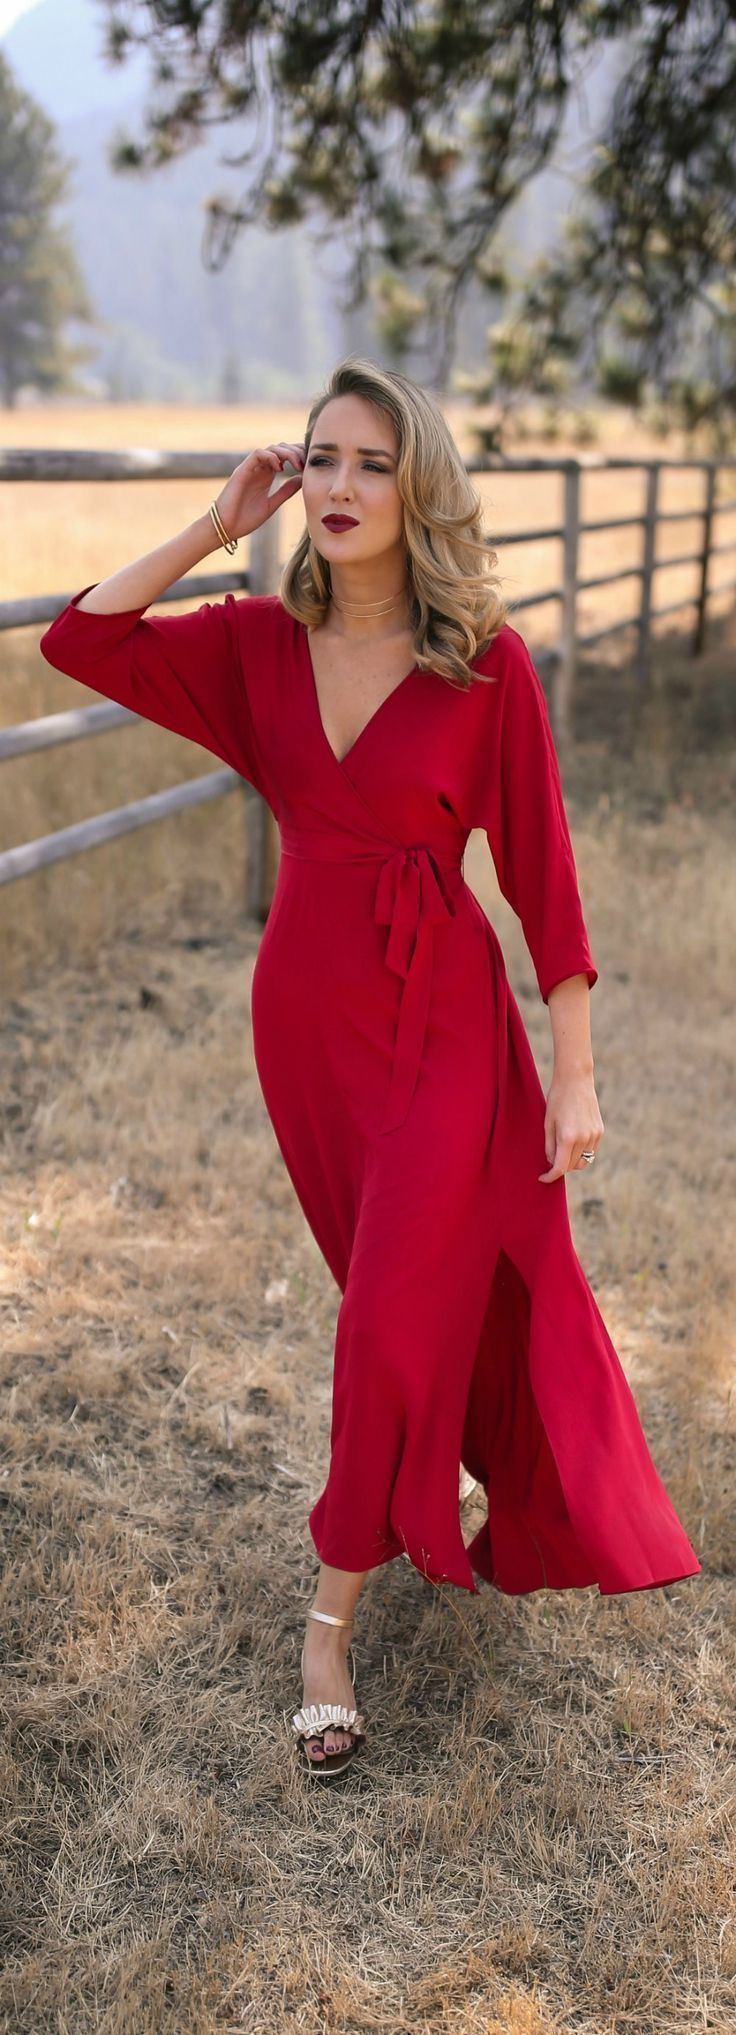 Click for outfit details! // Red floor-length wrap dress, gold ruffle sandals, multirow choker, circle drop earrings, gold bangles {Diane Von Furstenberg, Marks & Spencer, Argento Vivo, Armani, fall wedding style}